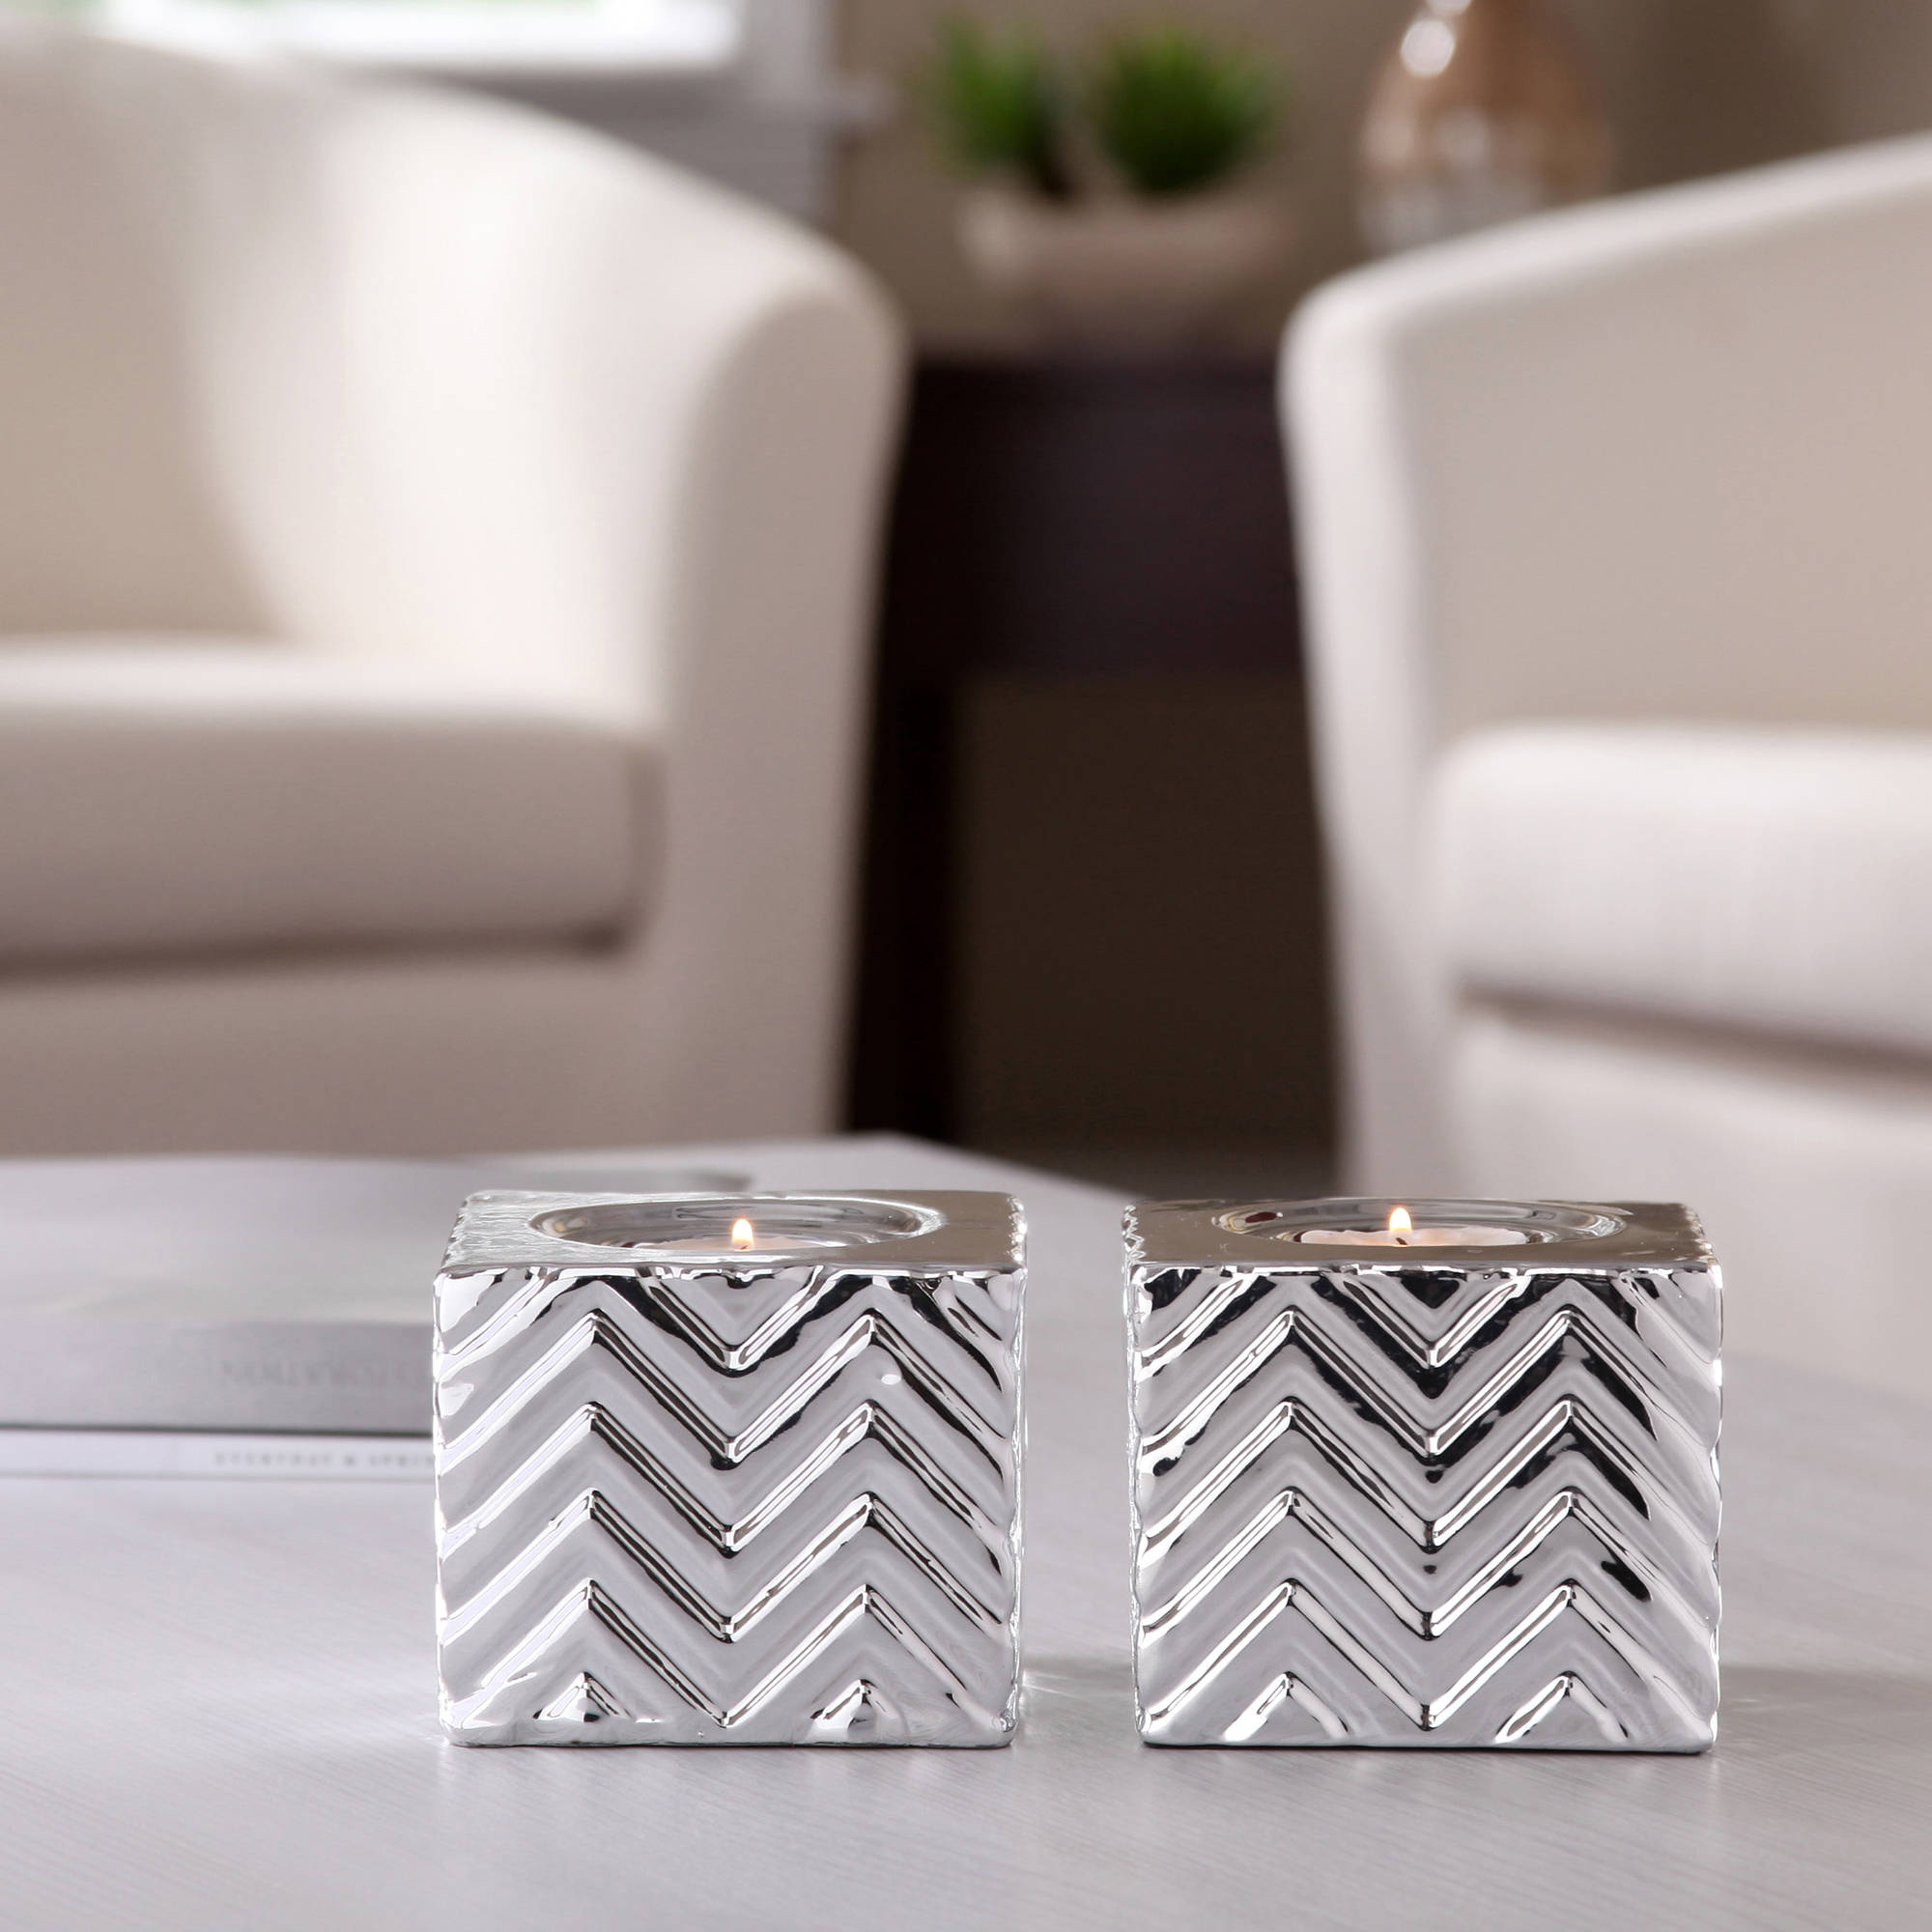 Better Homes and Gardens Ceramic Chevron Tealight Candle Holders, Set of 2 by